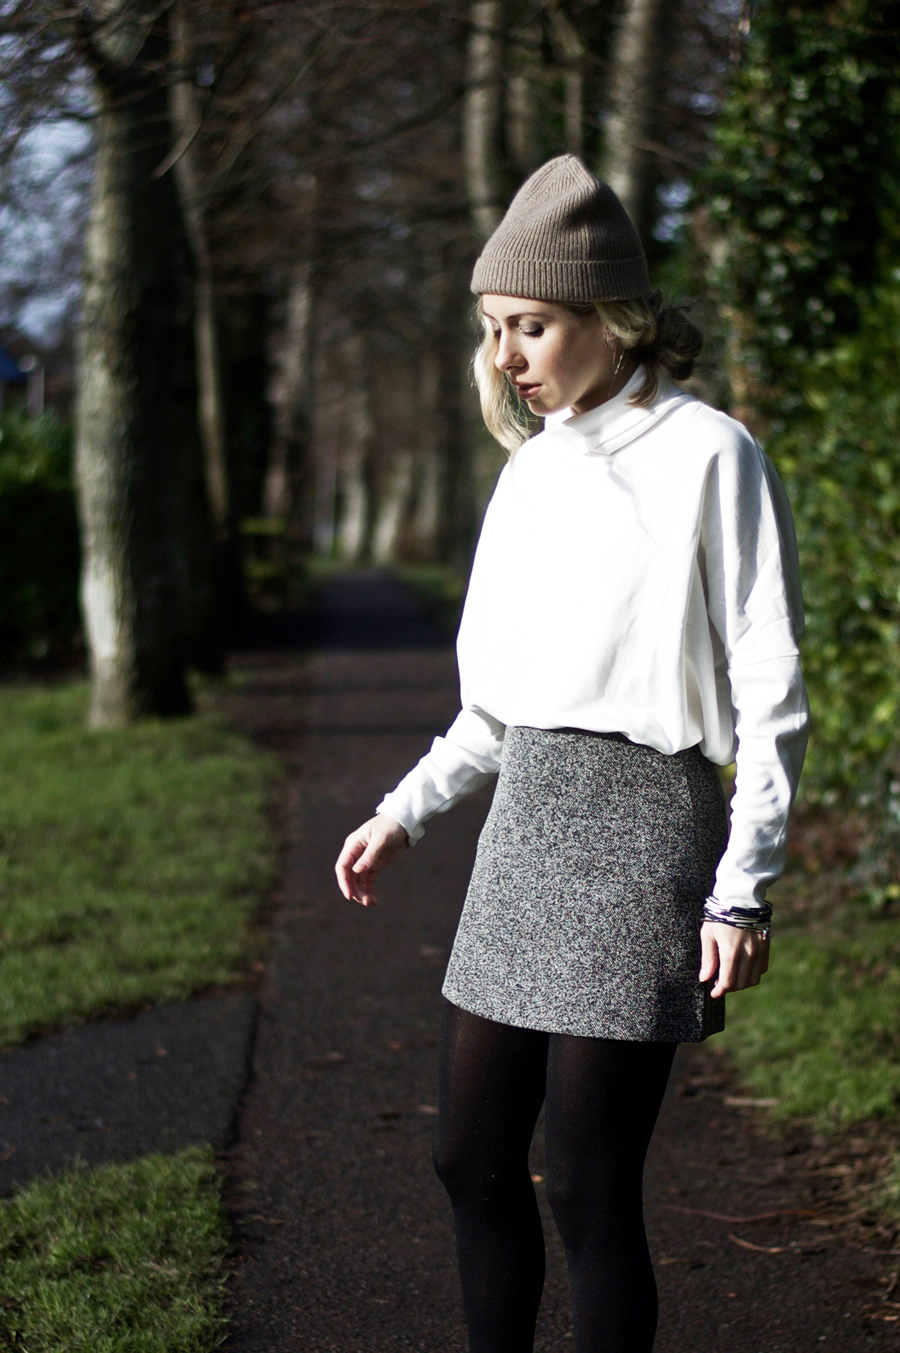 Today's Outfit: The Grey Mini Skirt